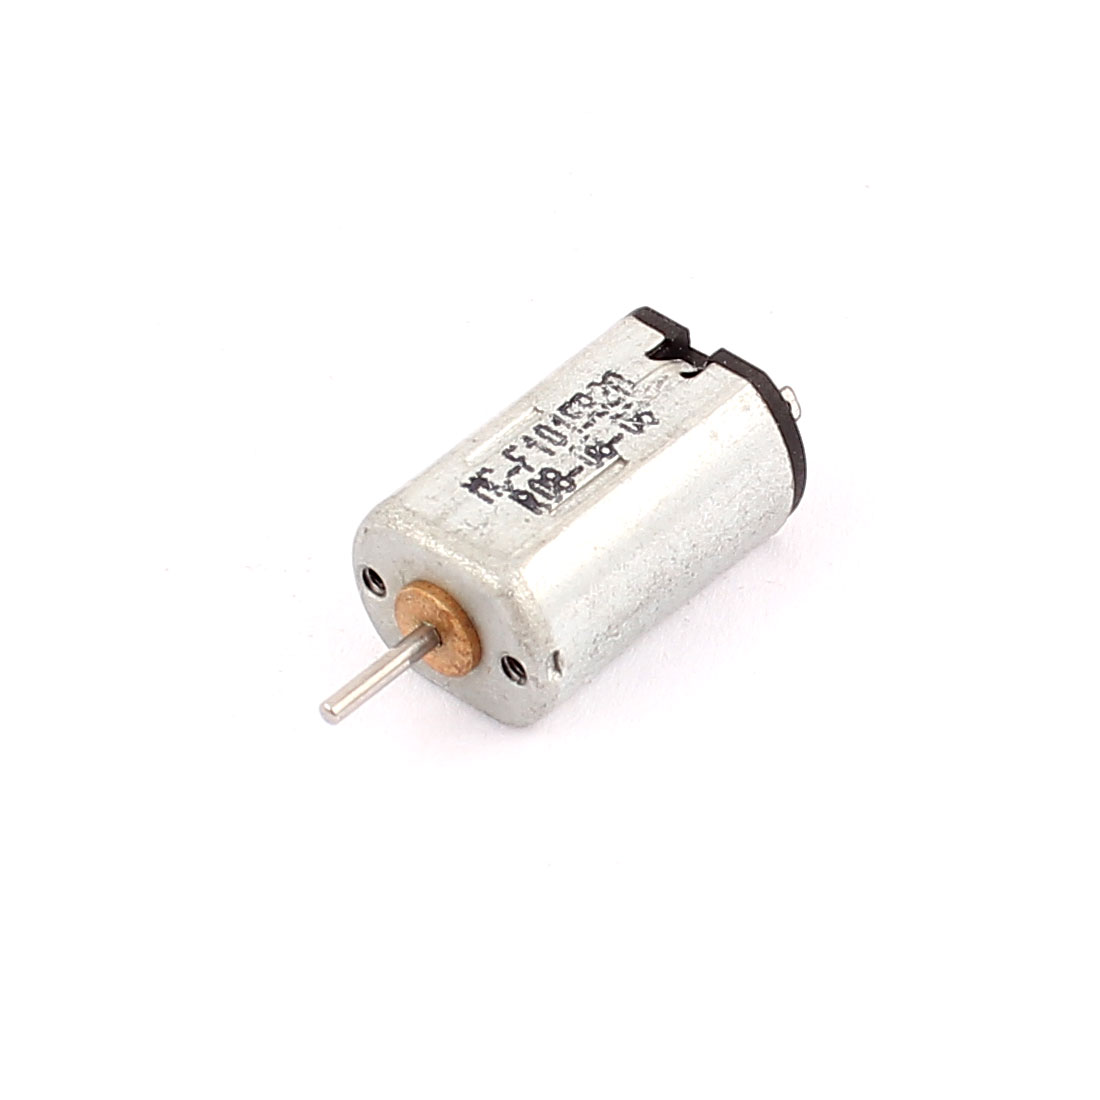 N20 DC 1.5-6V 26500RPM Micro Motor for RC Model Helicopter